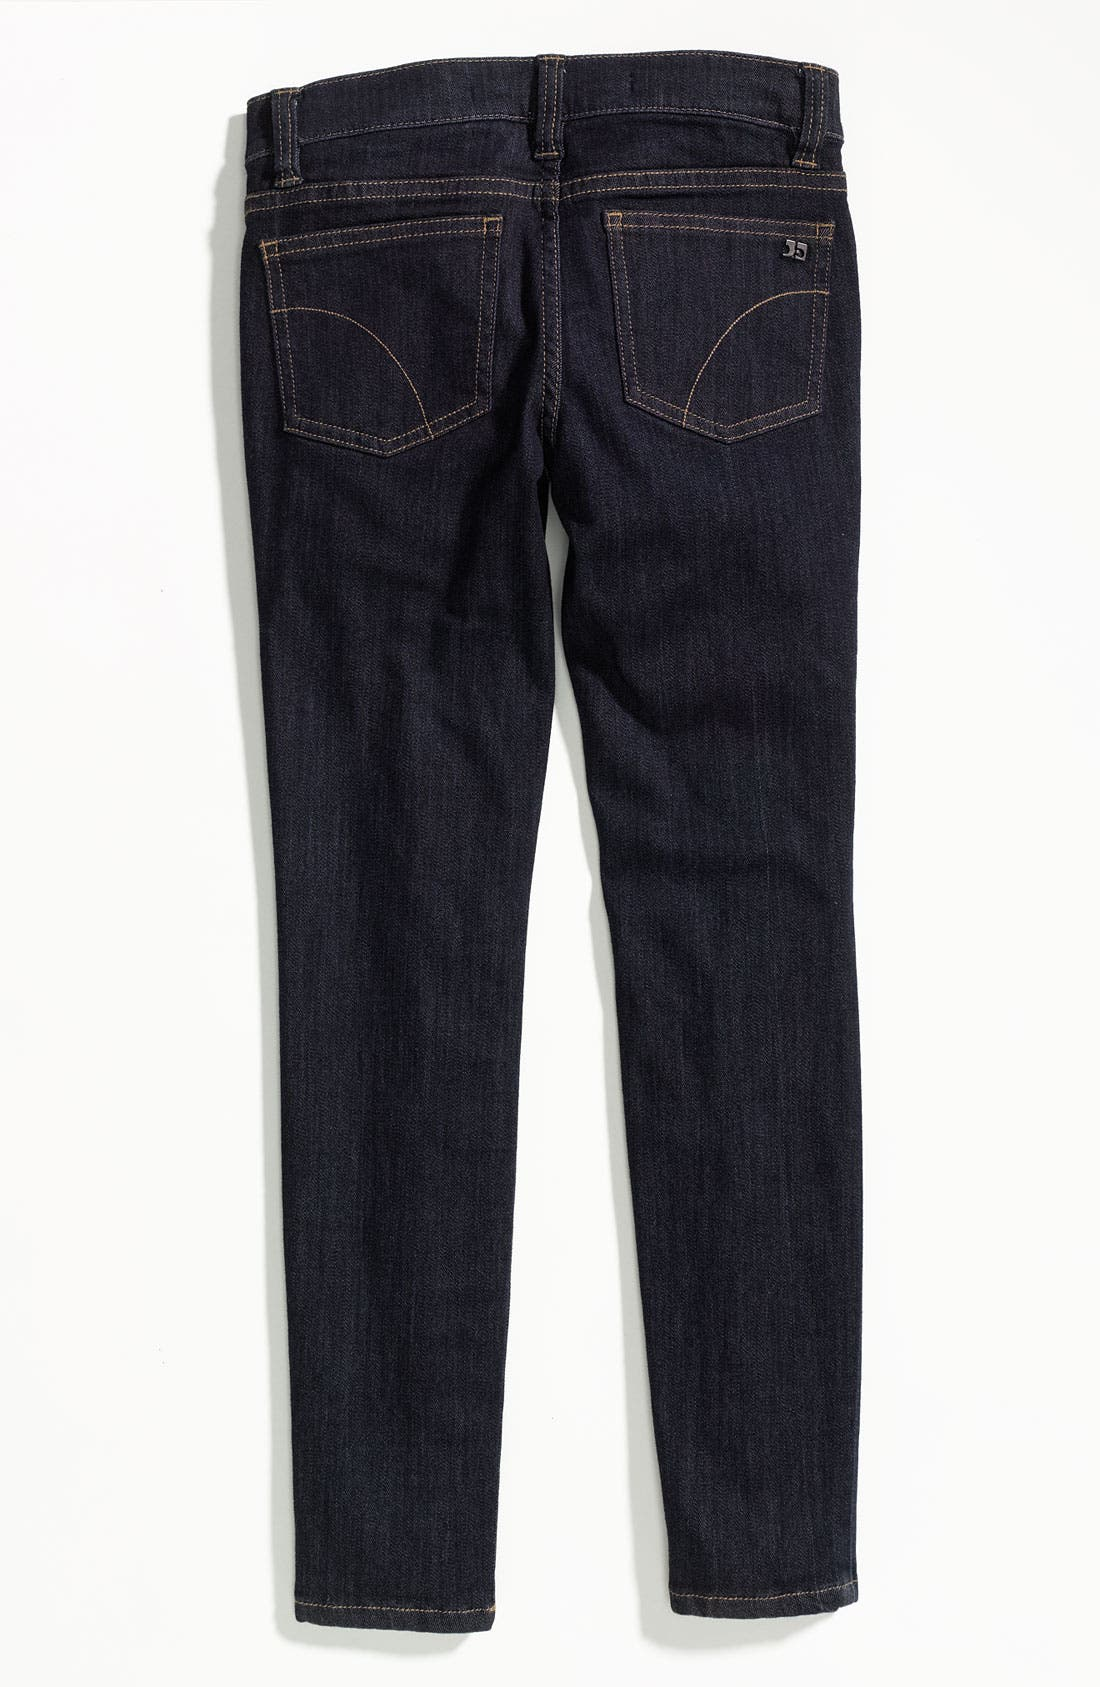 Main Image - Joe's 'Supersmooth' Super Skinny Jeans (Big Girls)